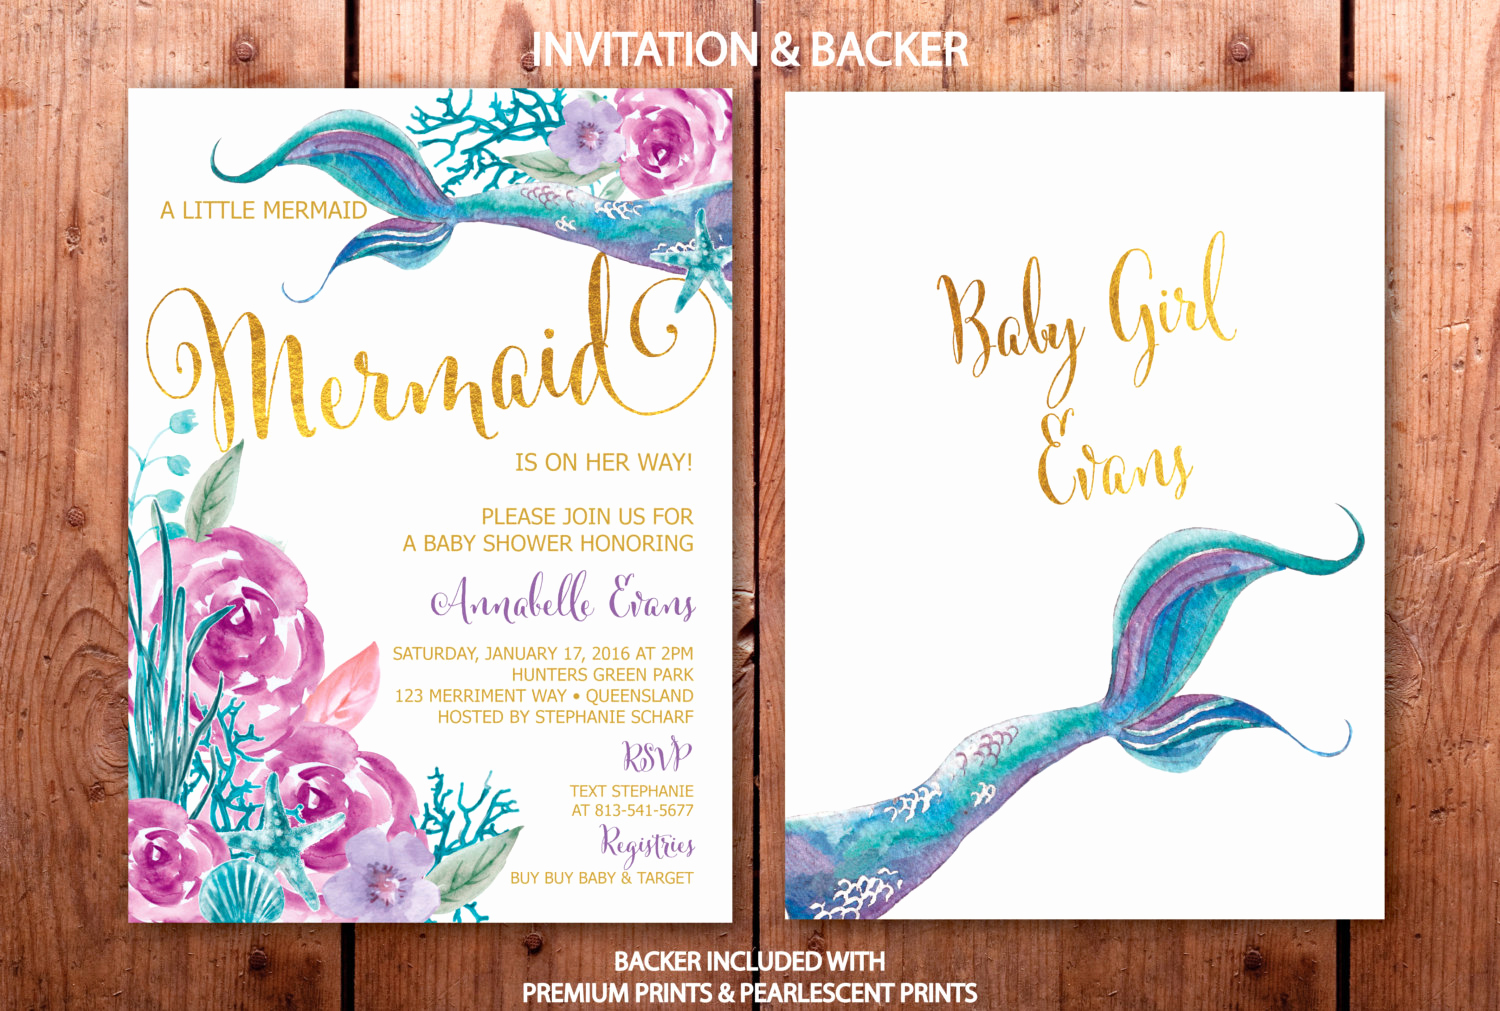 Mermaid Baby Shower Invitations Unique Mermaid Baby Shower Invitation Under the Sea Invitation